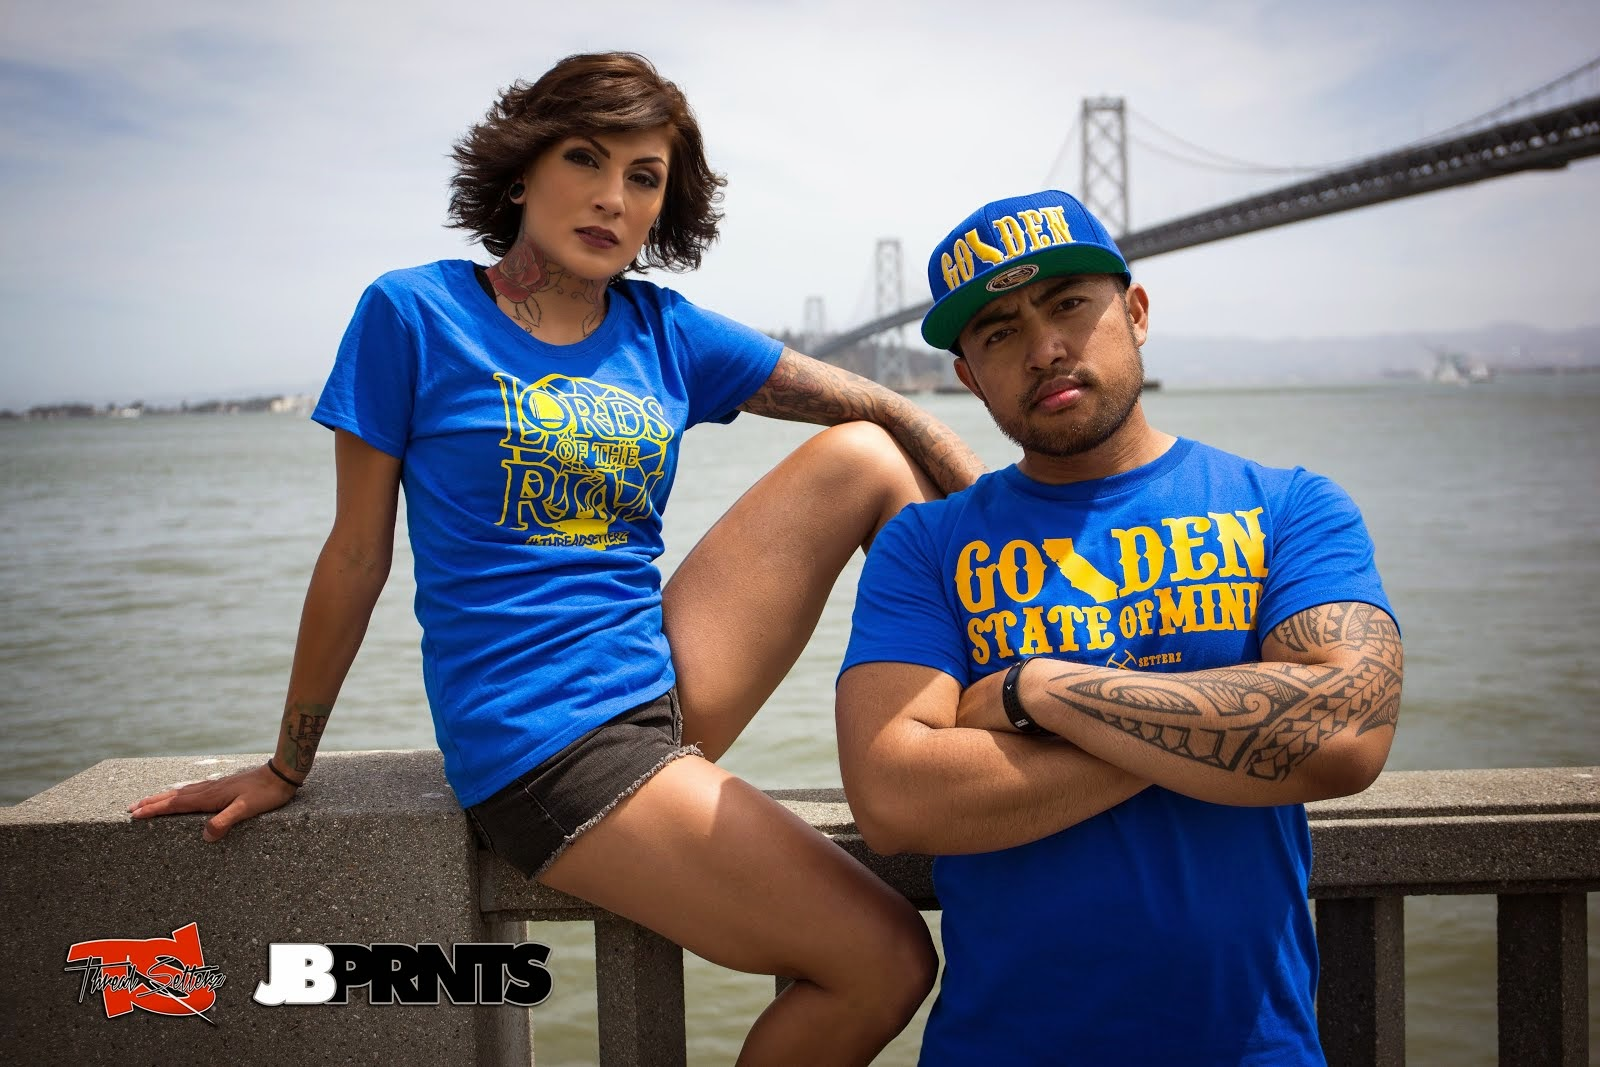 JBPRNTS x Threadsetterz San Francisco Photoshoot - May 2014